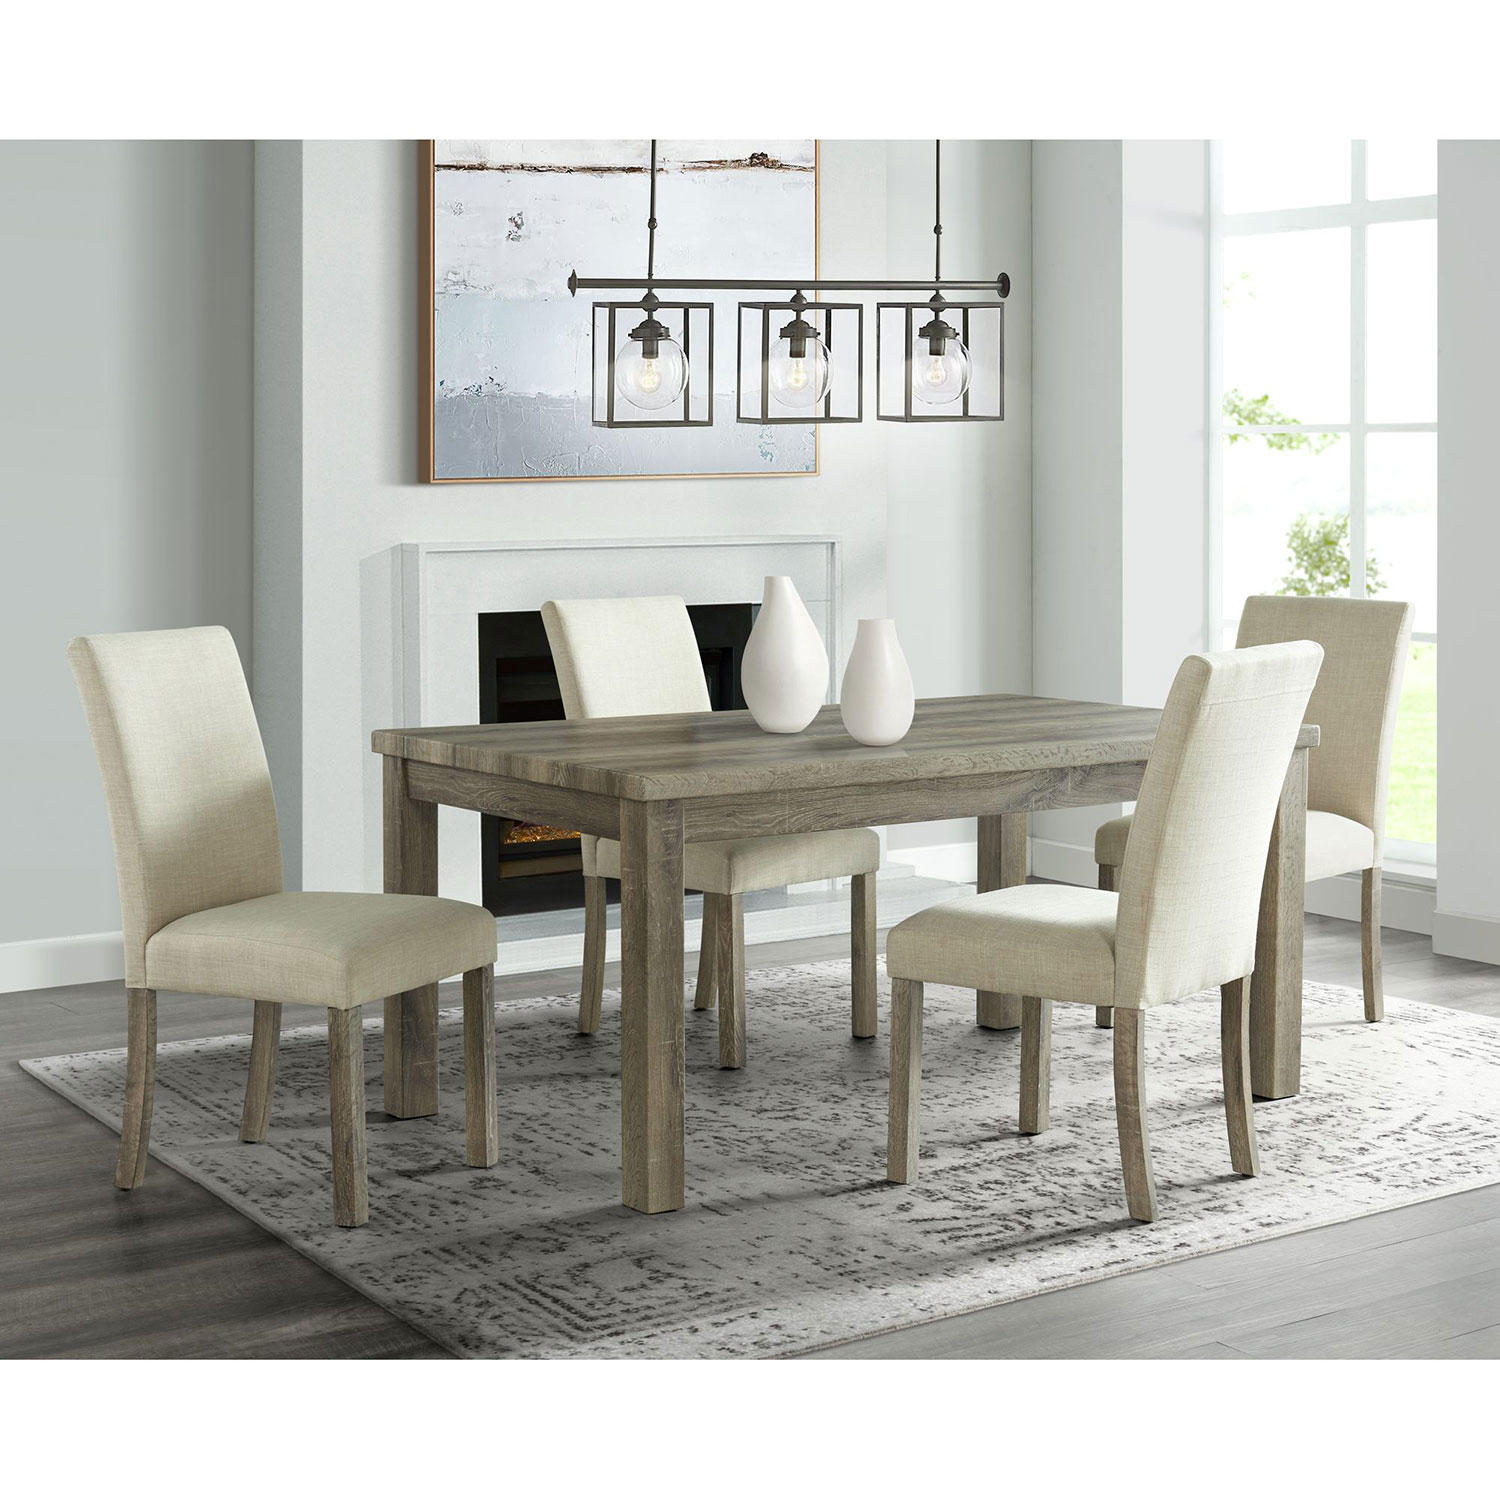 Society Den Turner 5-Pc. Standard-Height Dining Set